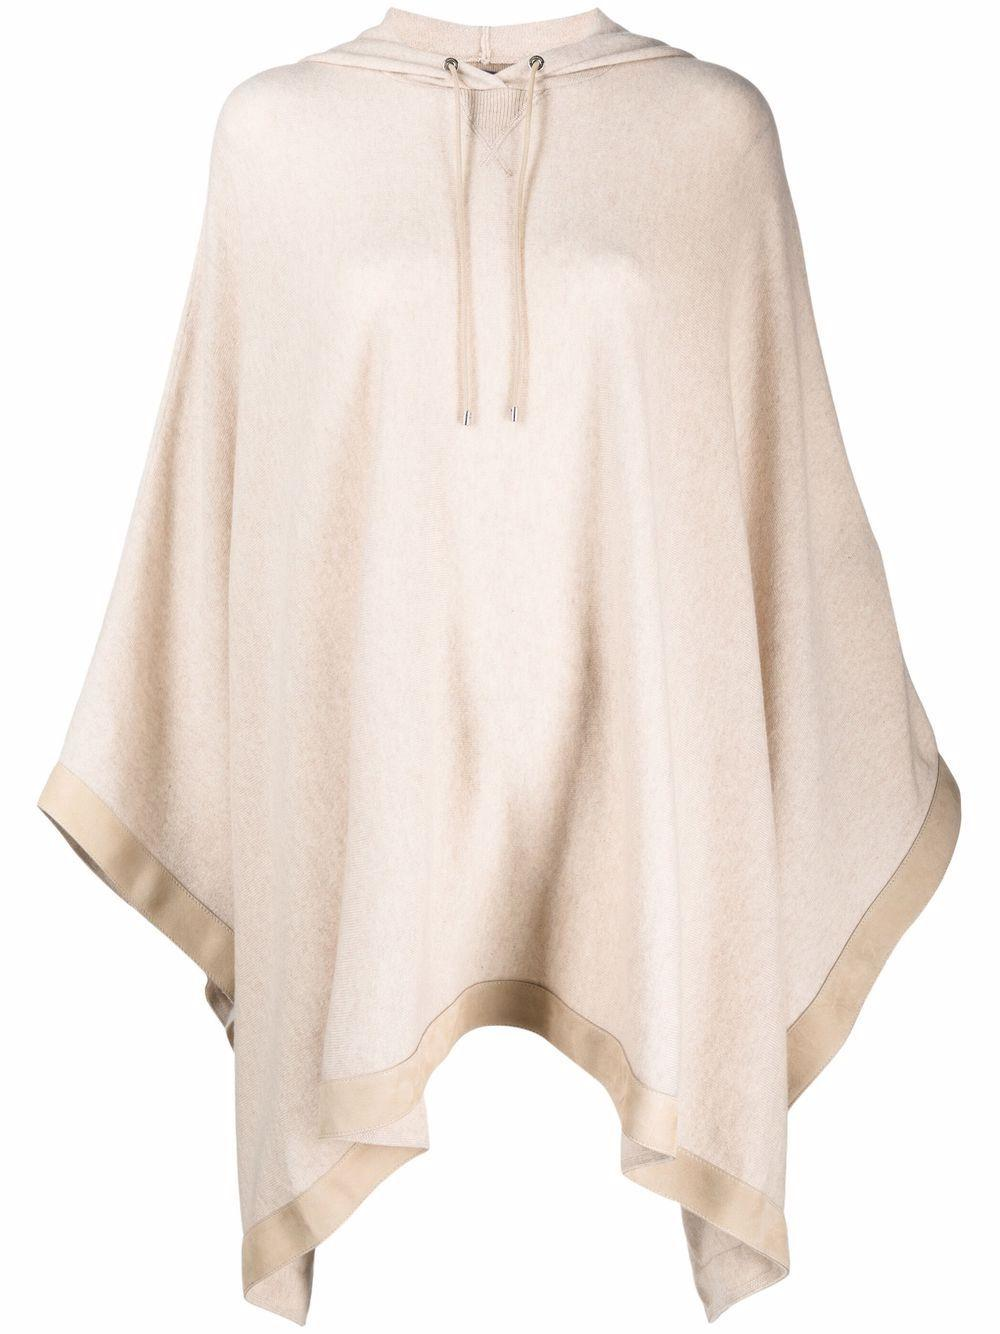 Hooded Poncho With Suede Trim Item # 290845673001